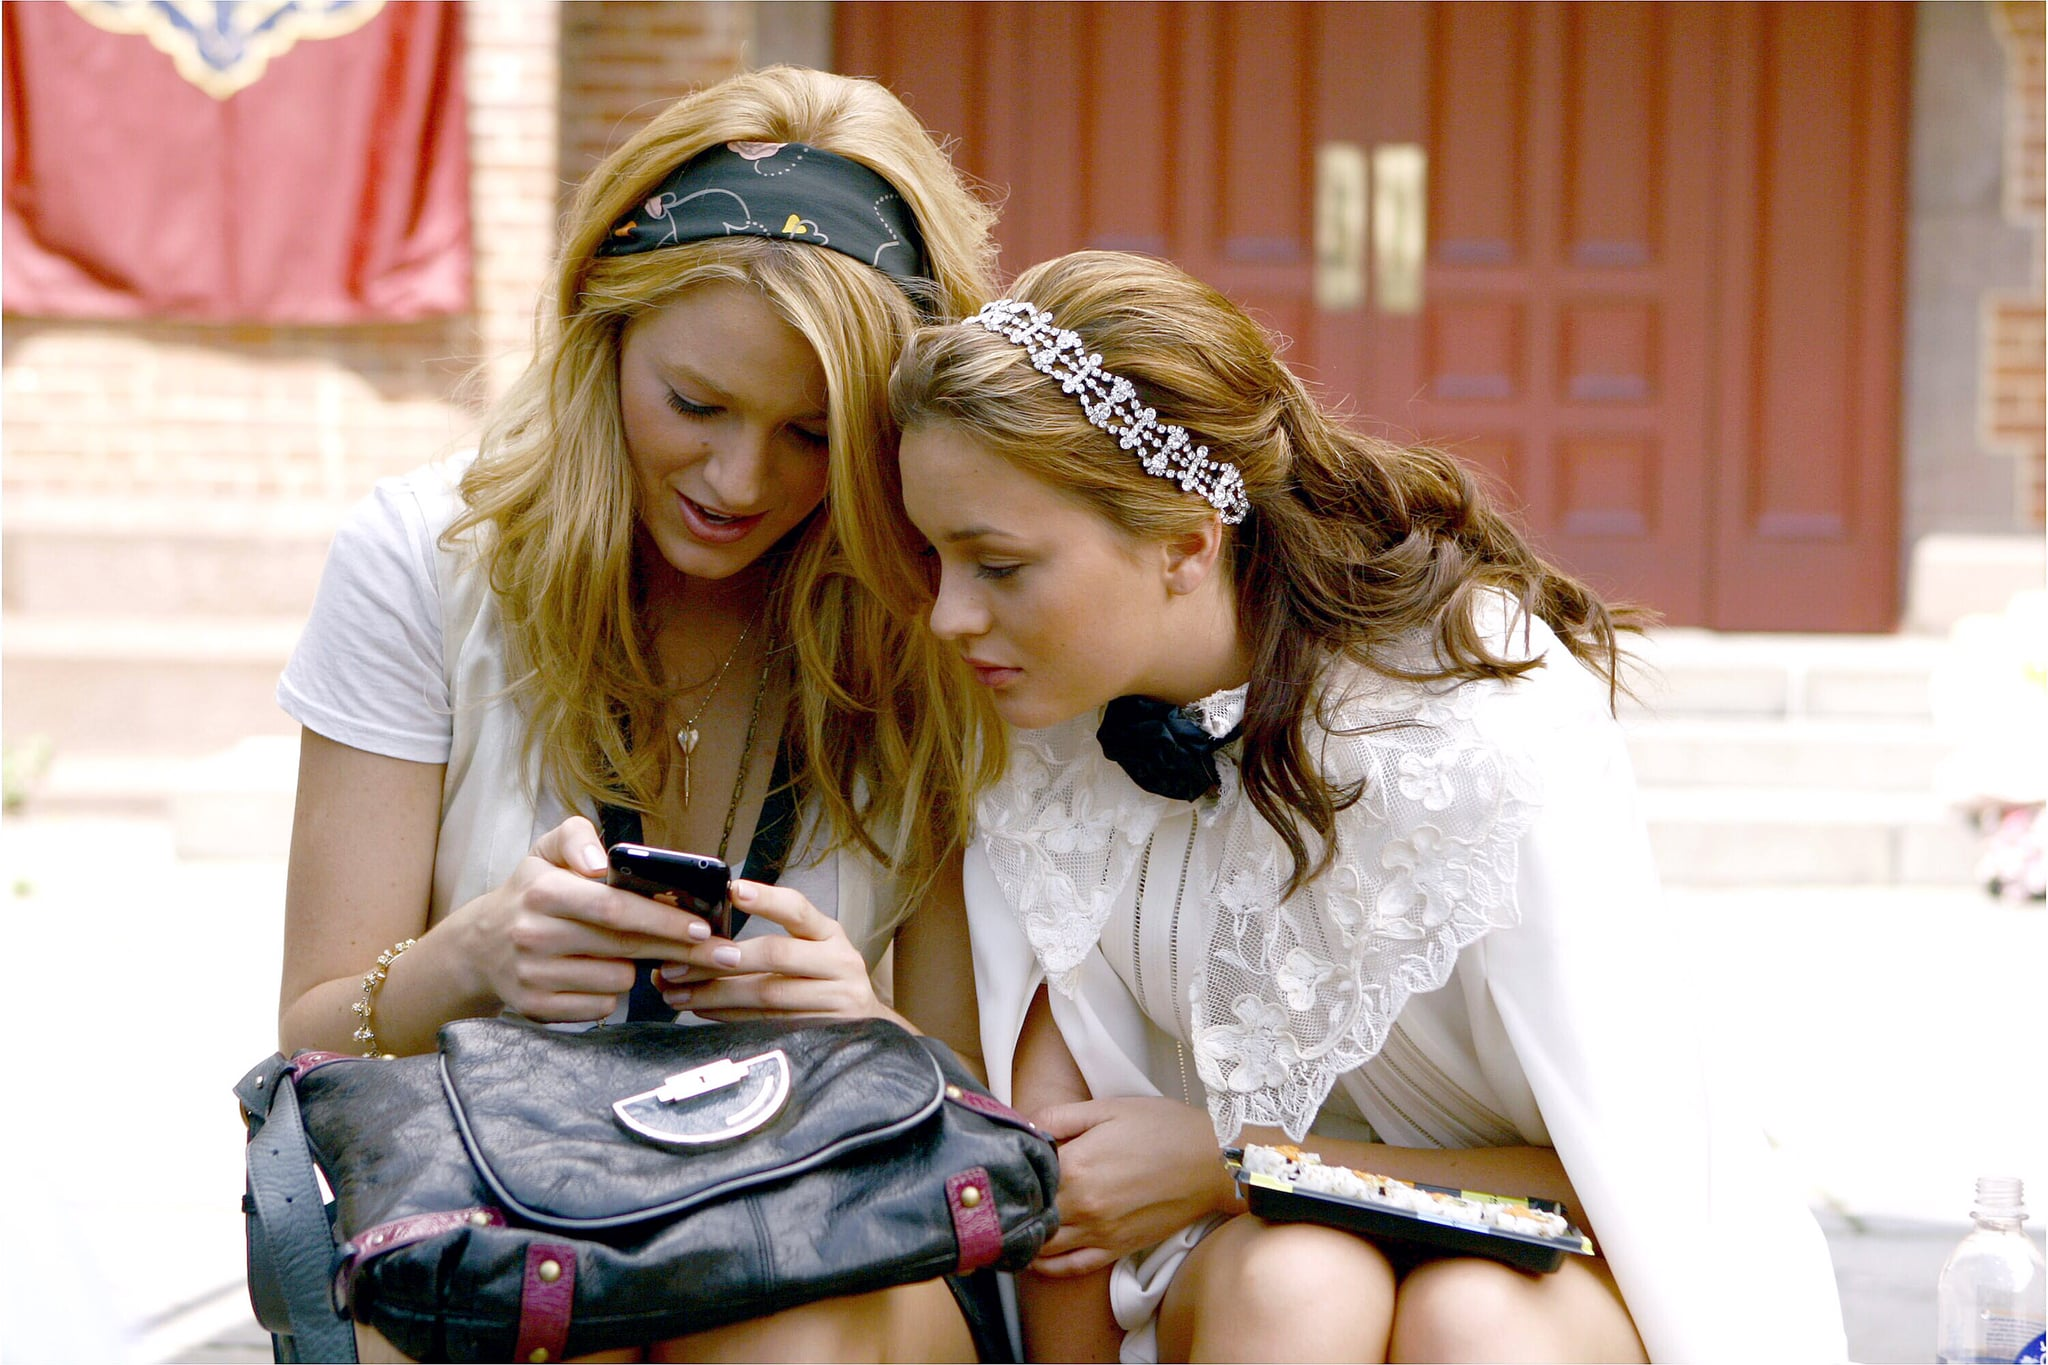 GOSSIP GIRL, from left: Blake Lively, Leighton Meester, 'The Ex-Files', (Season 2, ep. 204, aired Sept. 22, 2008), 2007-. photo: Giovanni Rufino /  The CW / Courtesy Everett Collection